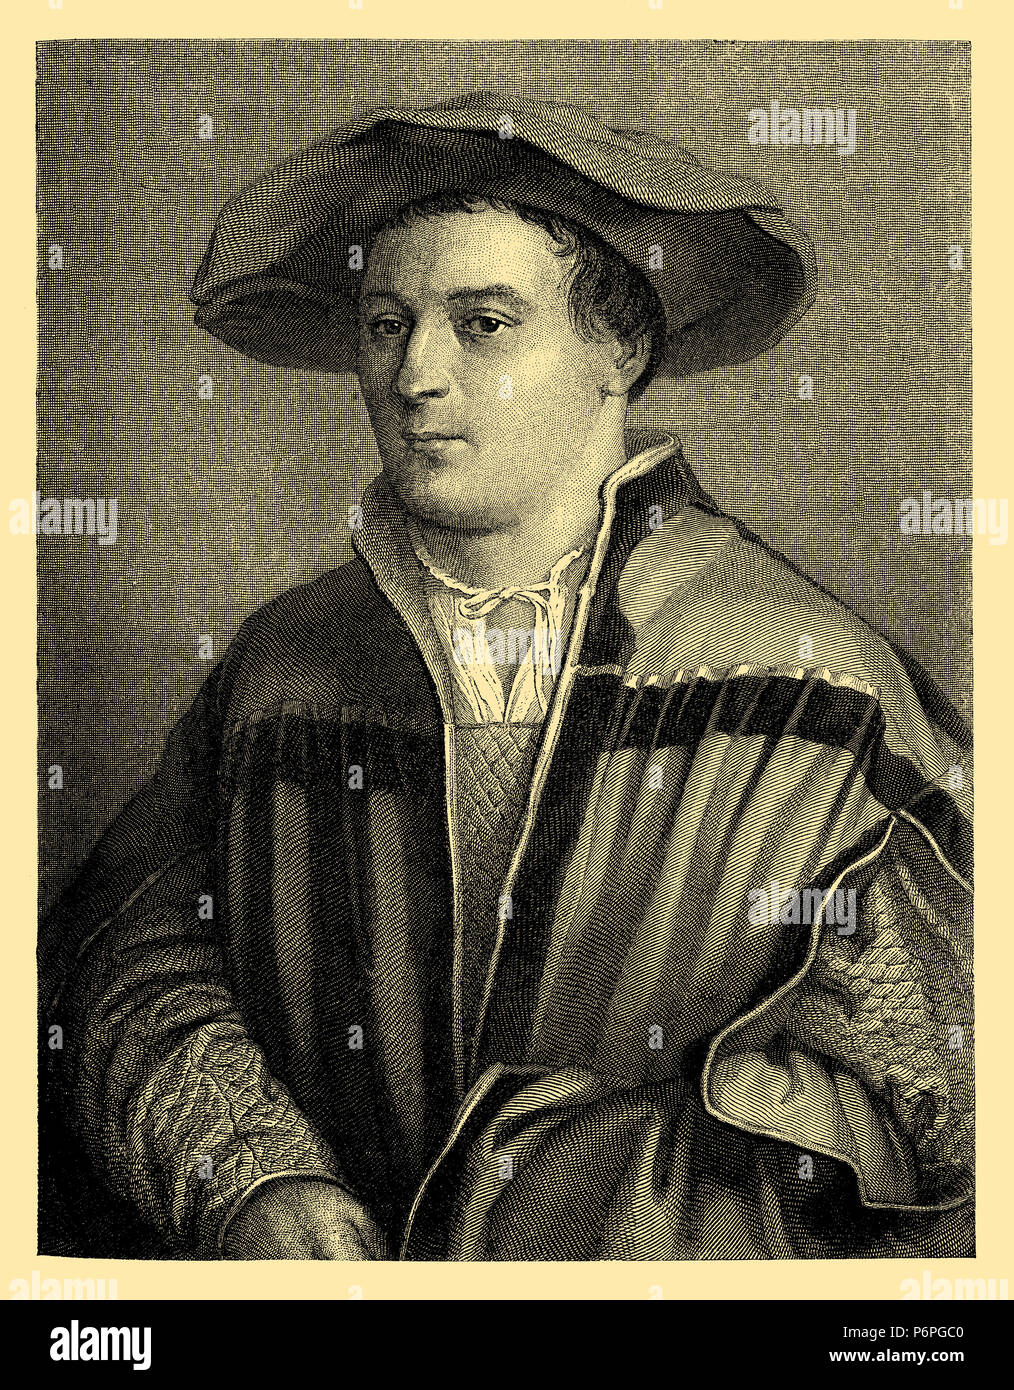 Hans Holbein the Younger. After the self-portrait engraved by Friedrich Weber, Hans Holbein der Jüngere - Stock Image